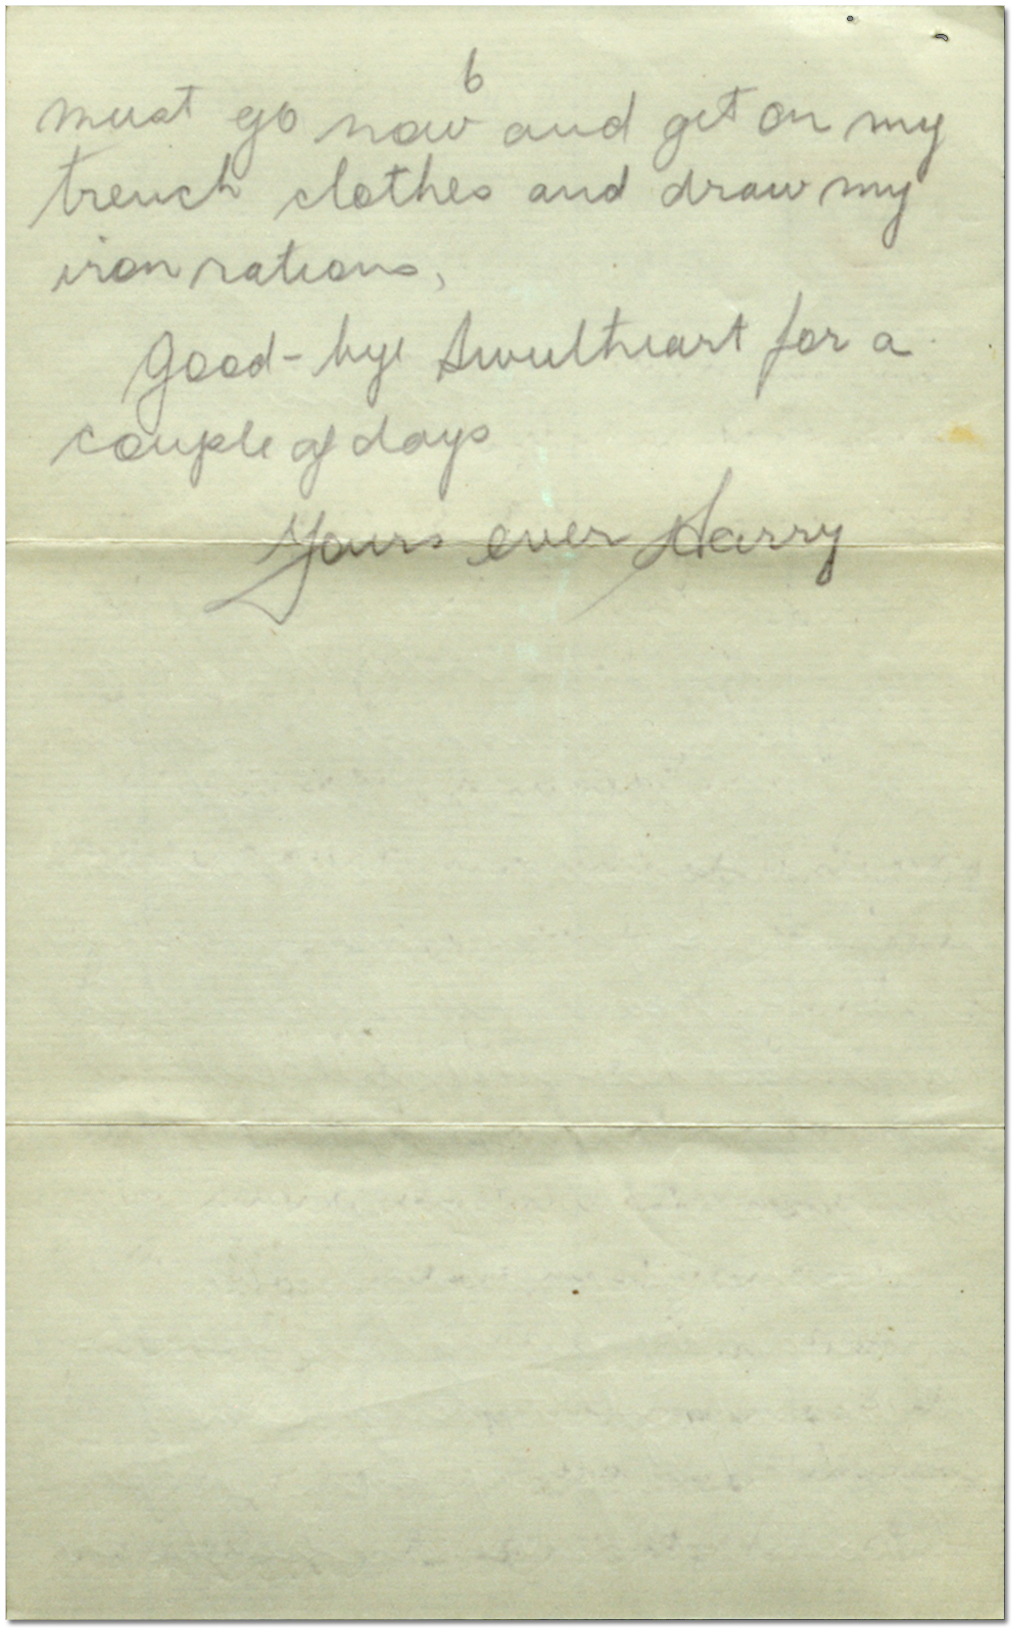 Letter from Harry Mason to Sadie Arbuckle, October 7, 1916